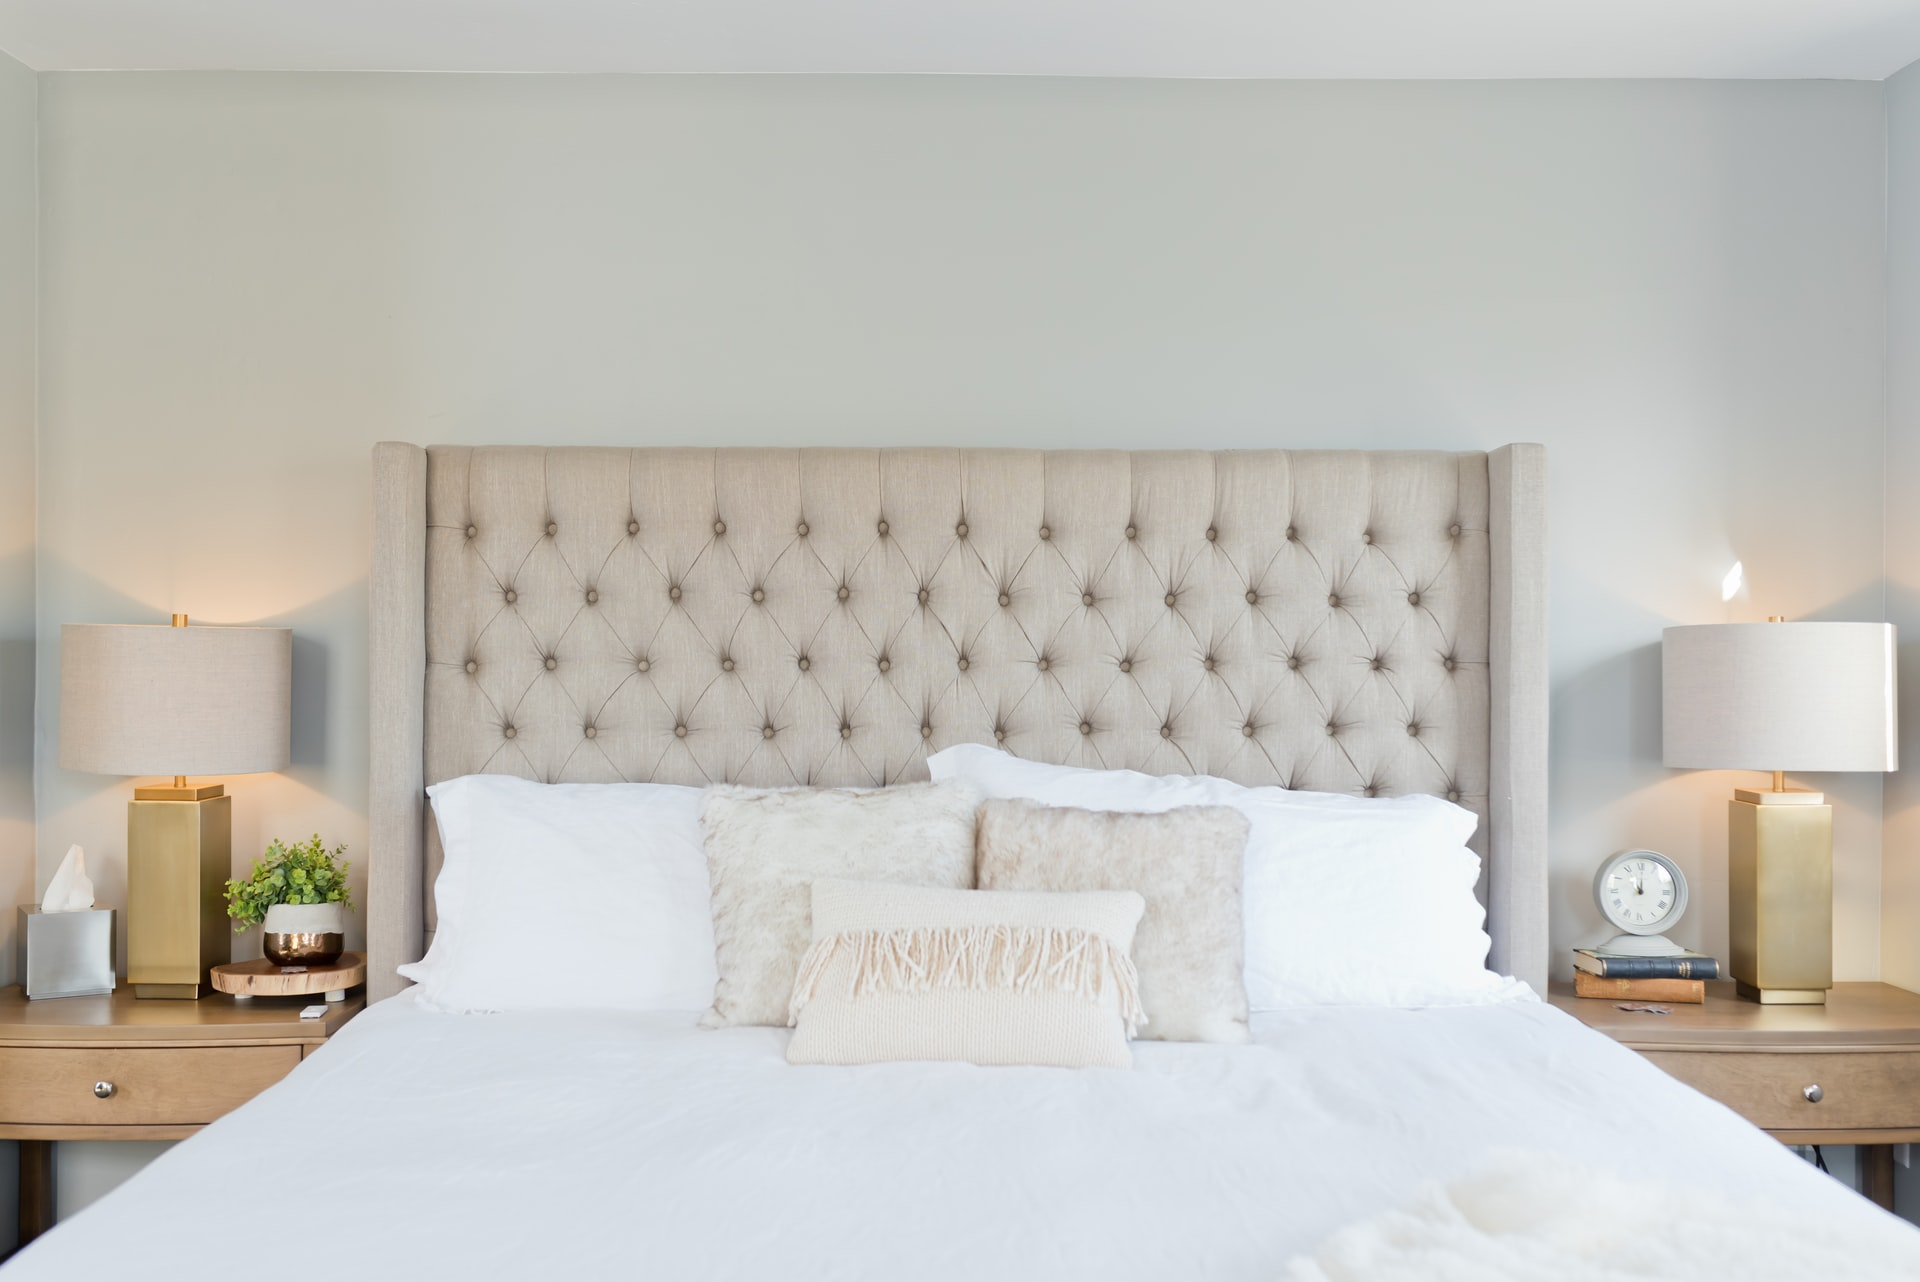 Sleep Bed Frame Headboard Header Image